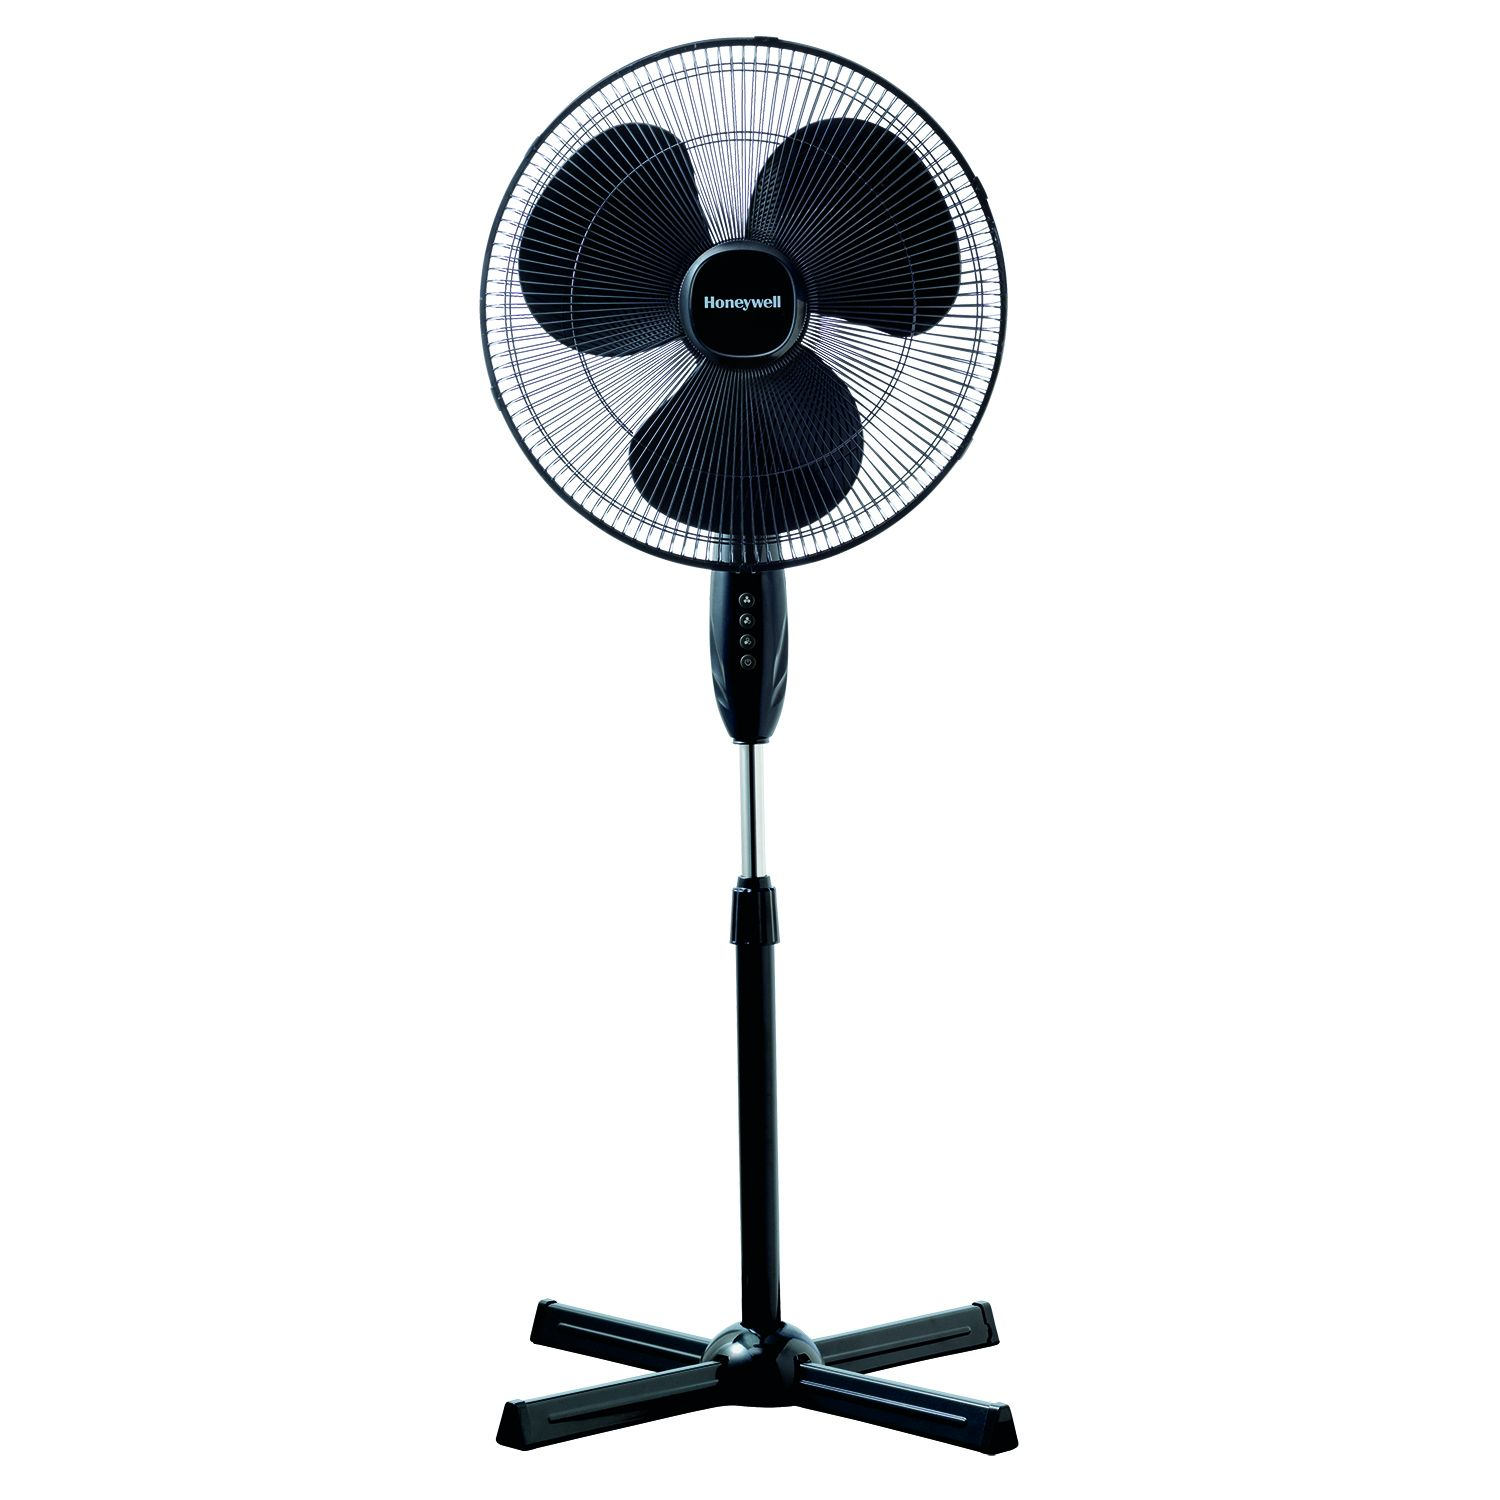 Honeywell Stand Fan : The honeywell hsf b quietset quot stand fan black